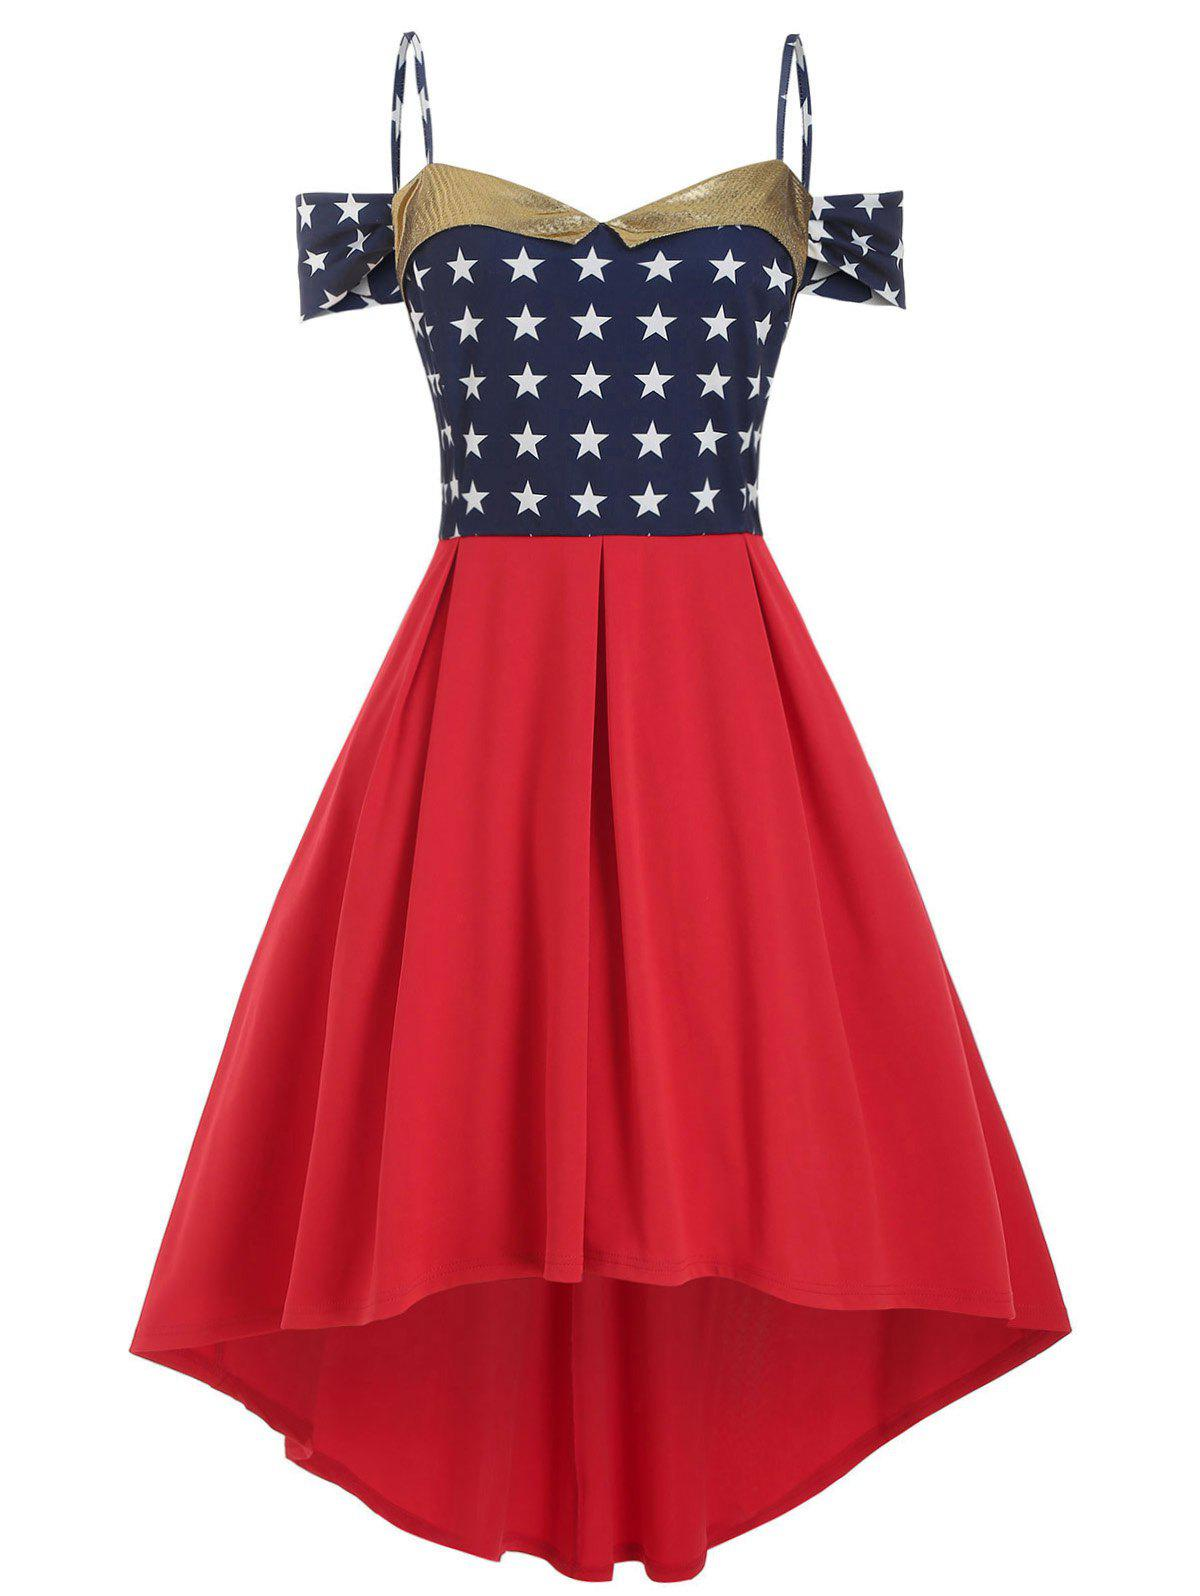 Stars Open Shoulder High Low Cami Plus Size Dress - RED 4X